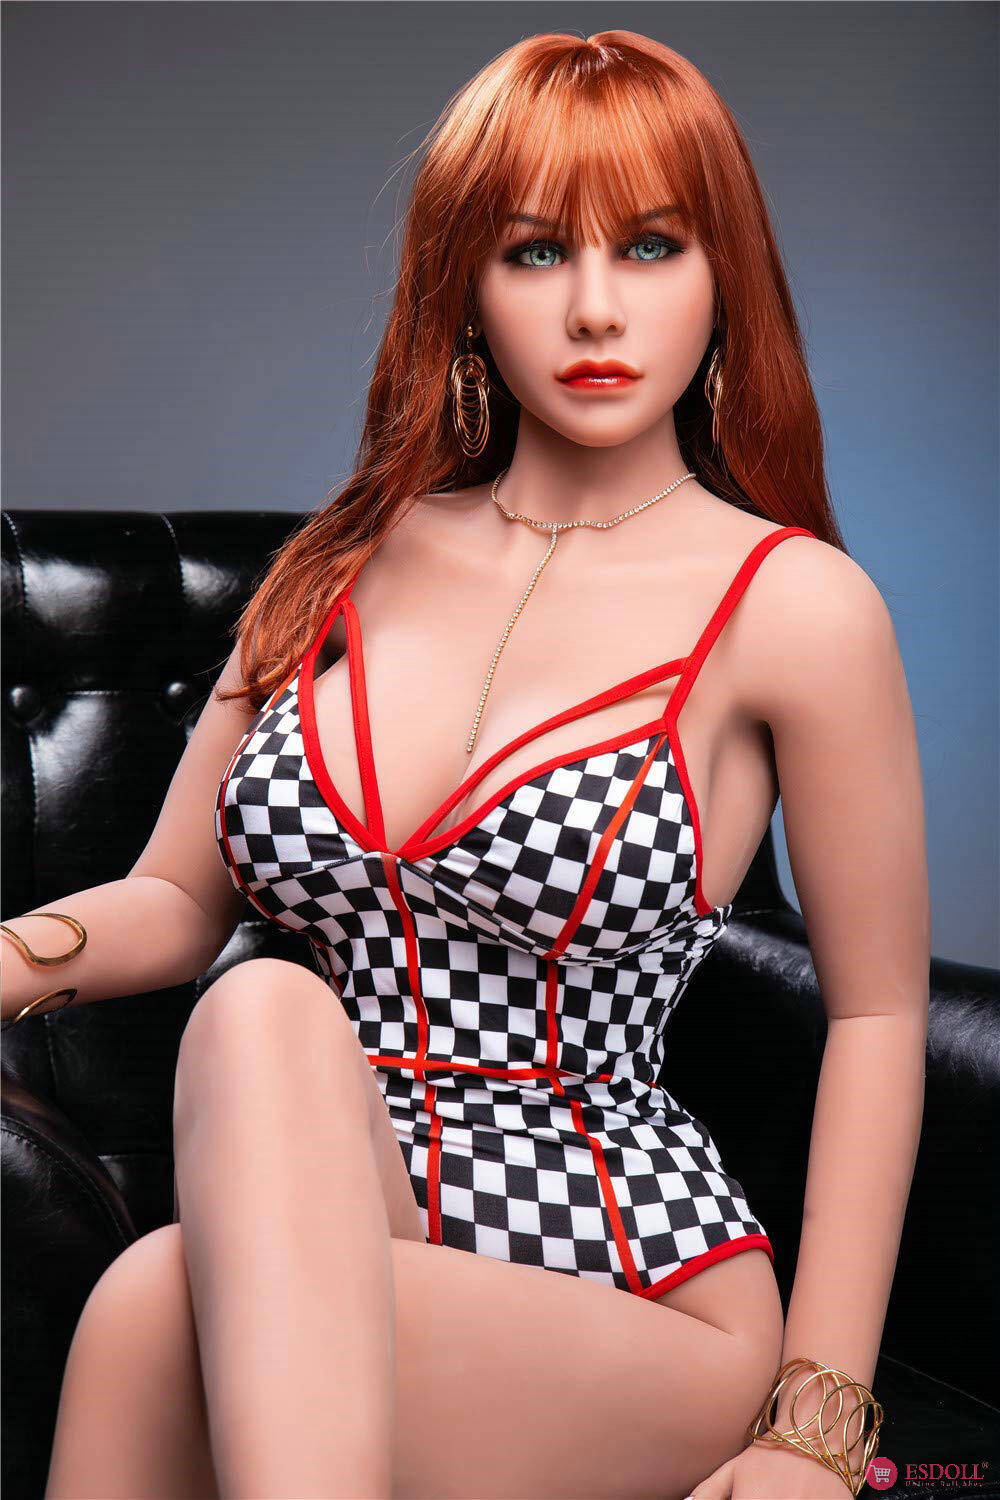 ESDoll-165-cm-65-Inch-Lifelike-Real-TPE-Sex-Doll-Big-Boobs (6)